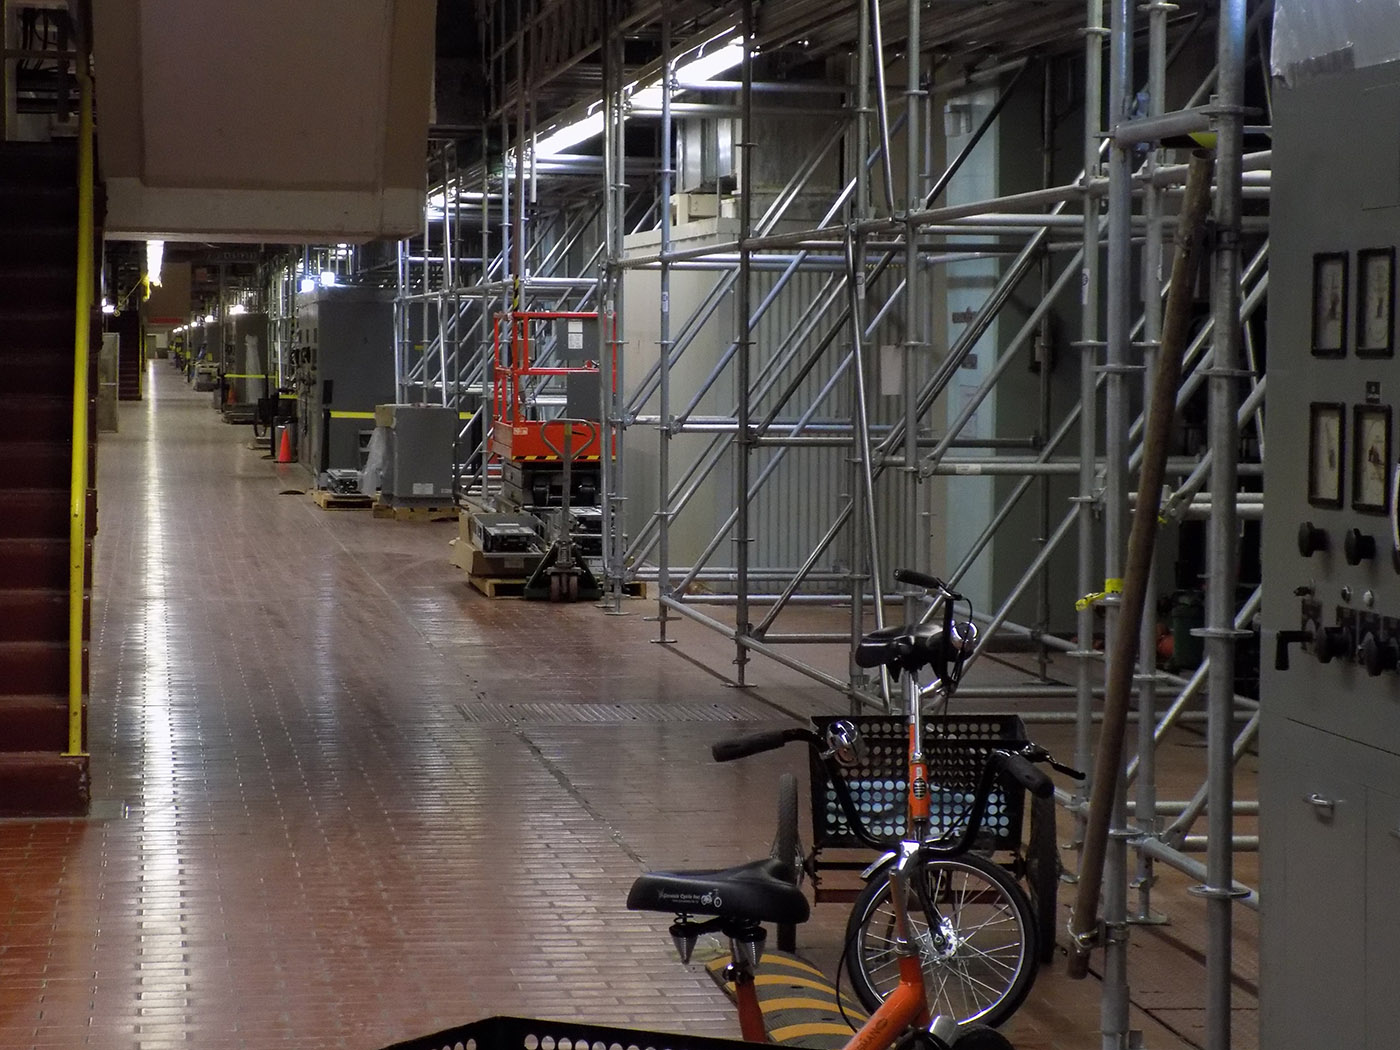 The row of governor control units for each generator. The scaffolding is a temporary measure while work is done to reduce concrete expansion. The tricycle is one of many ways plant employees travel around the large facility.  This photo was taken looking south from unit 1.  Photo: James Morgan